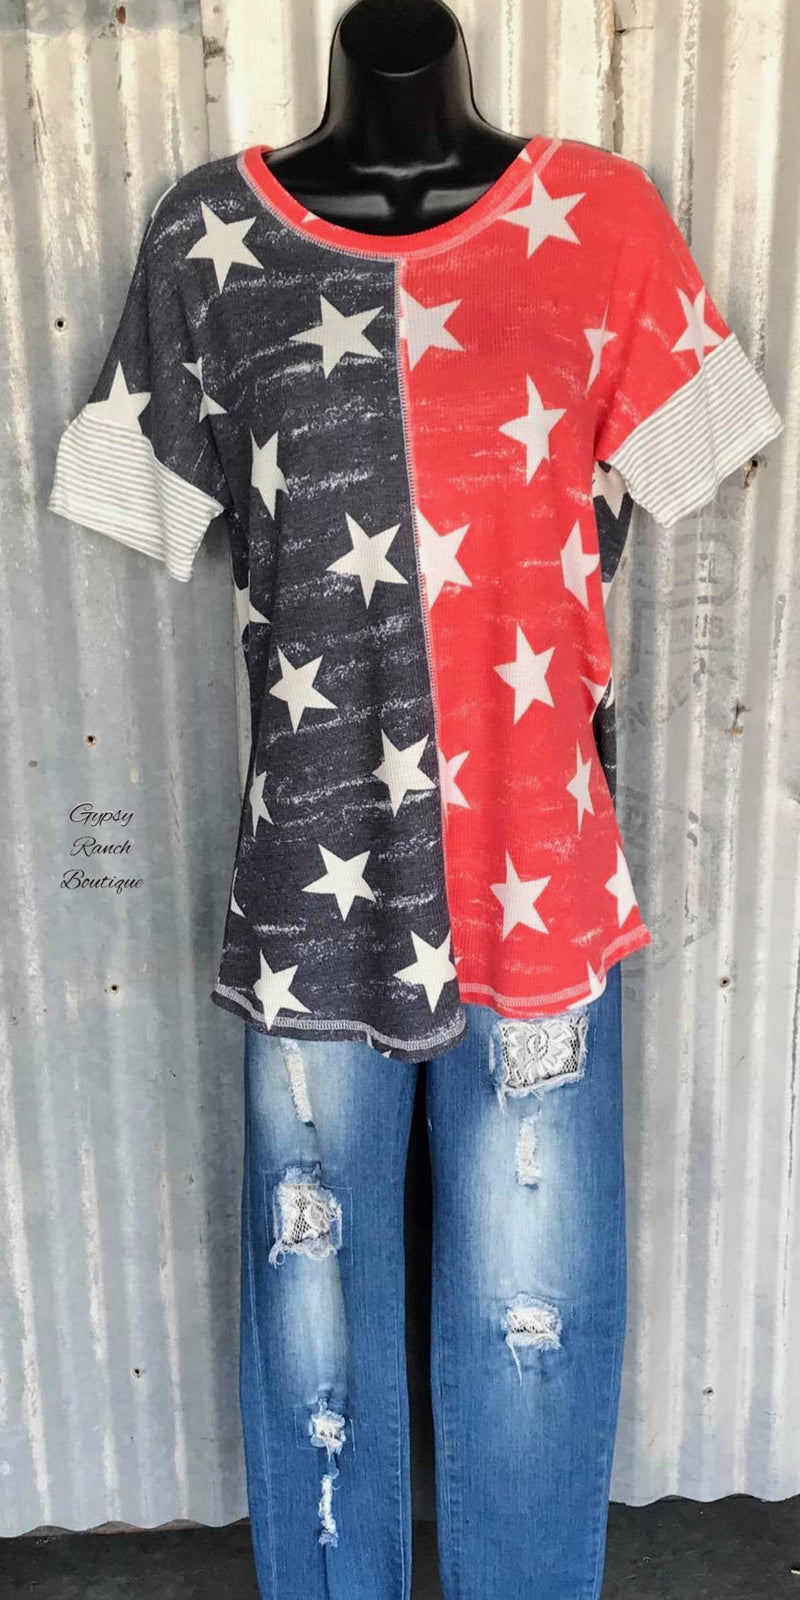 Star Spangled Top - Also in Plus Size